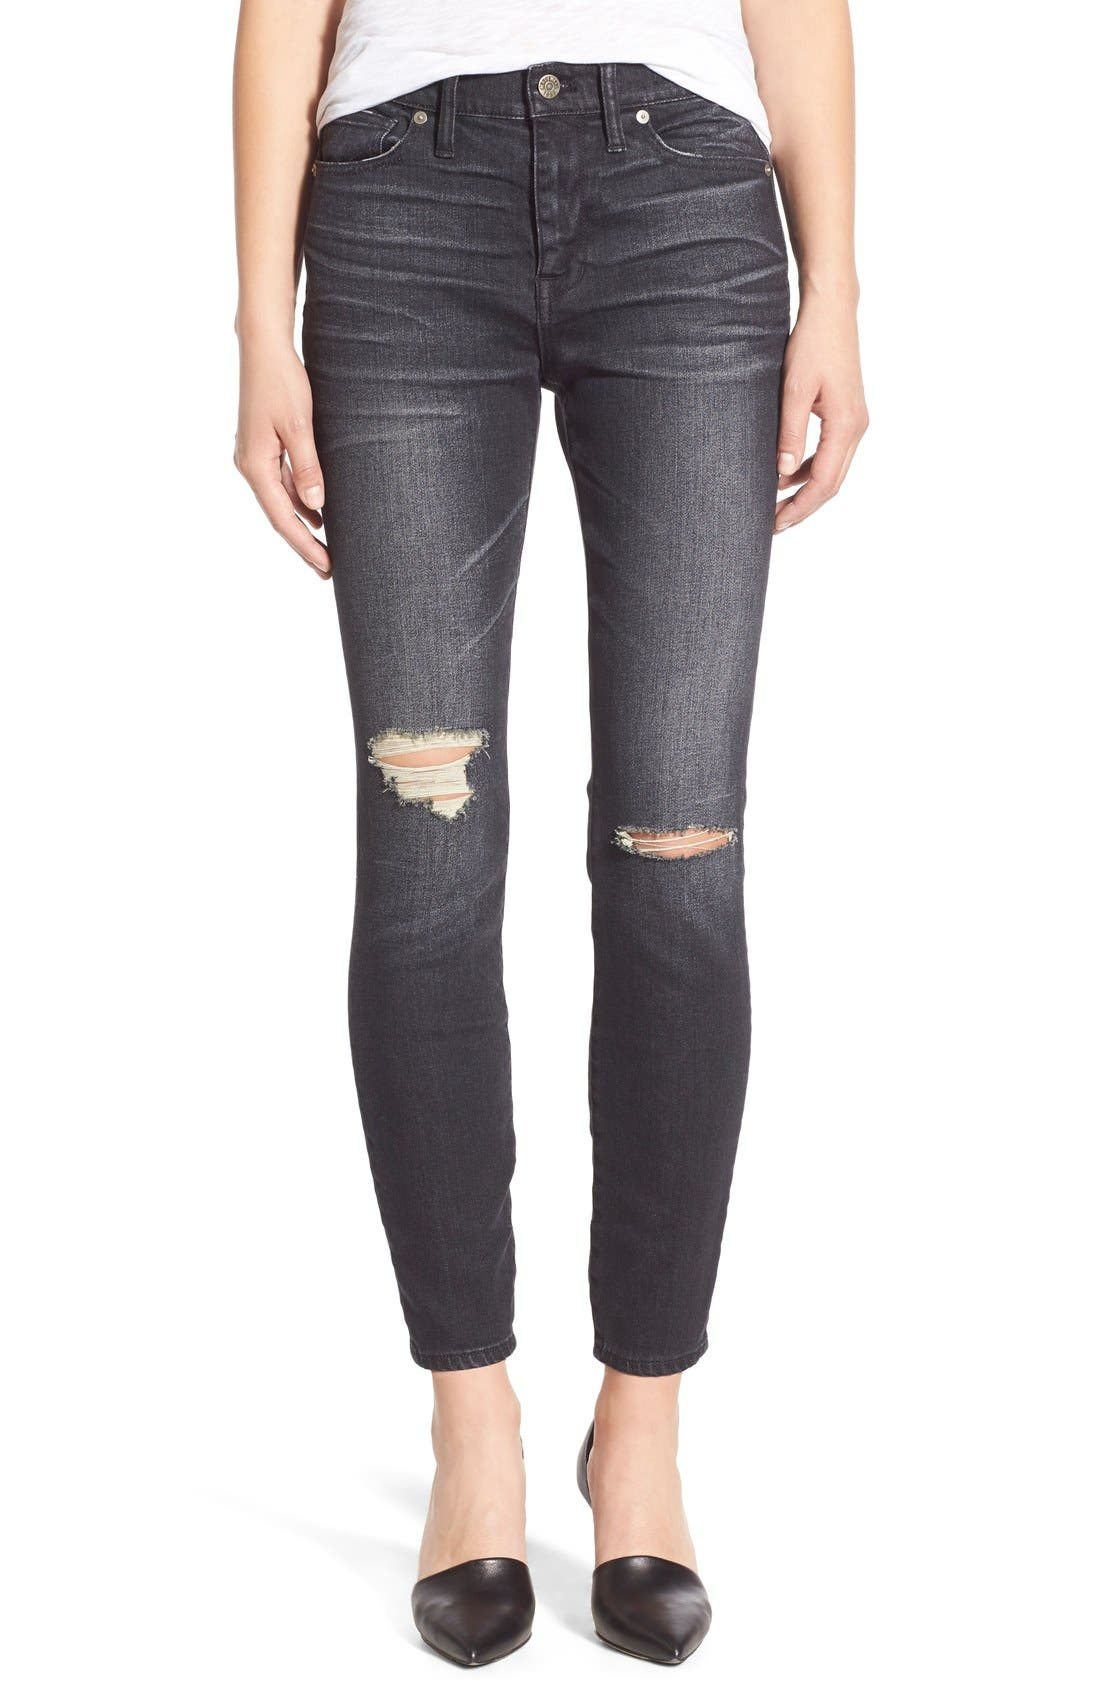 Alternate Image 1 Selected - Madewell 'High Riser' Skinny Skinny Jeans (Kincaid Wash)